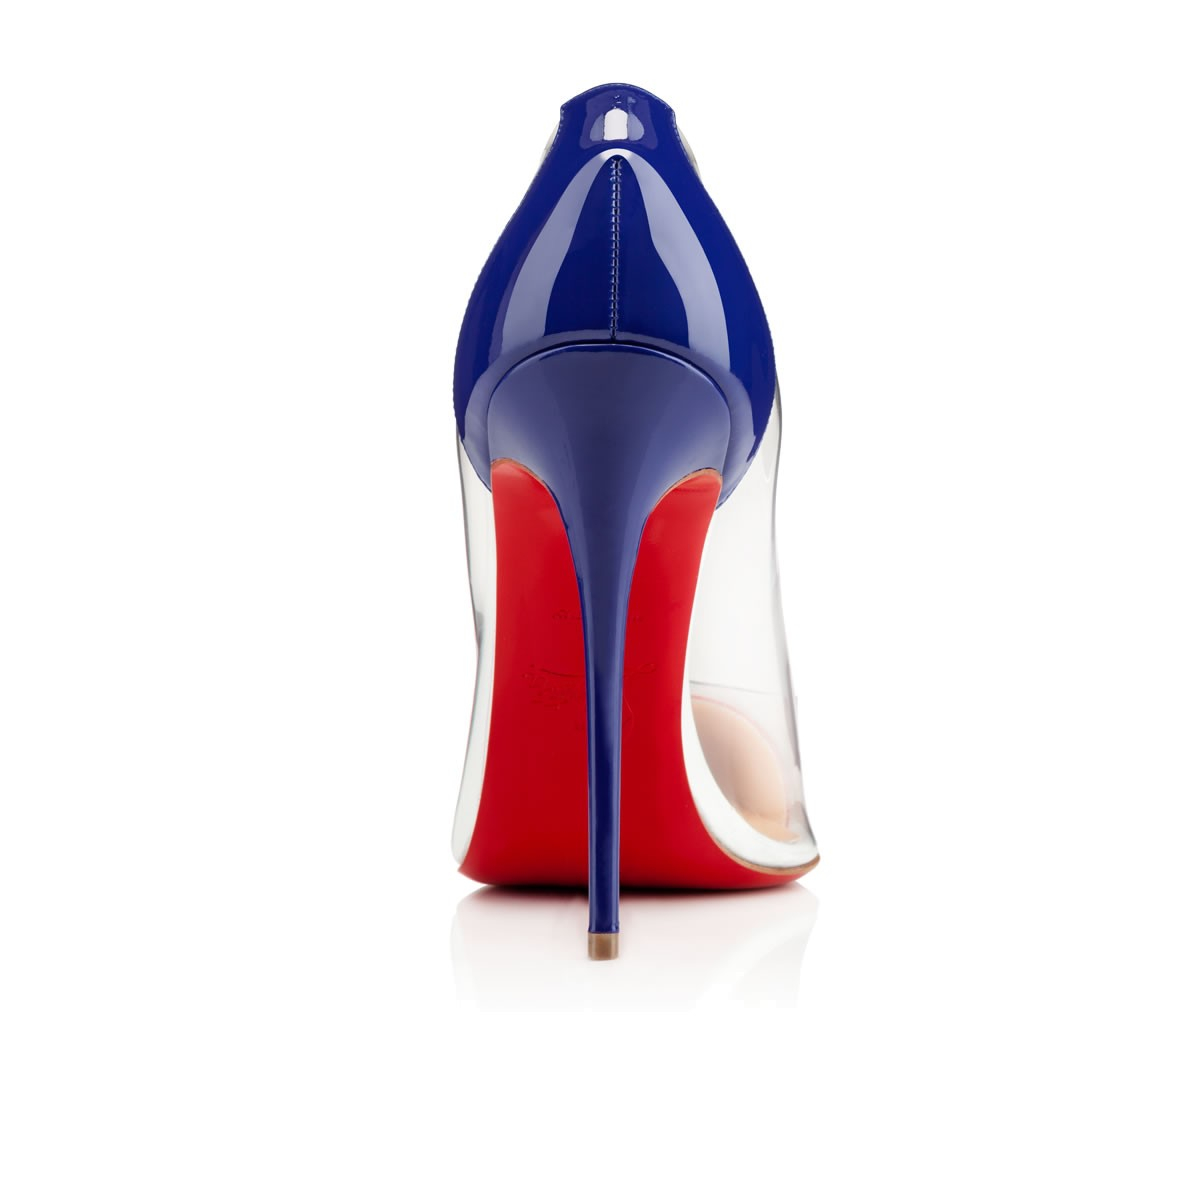 kelly handbags - christian louboutin debout pvc pointed-toe pumps, spiked christian ...